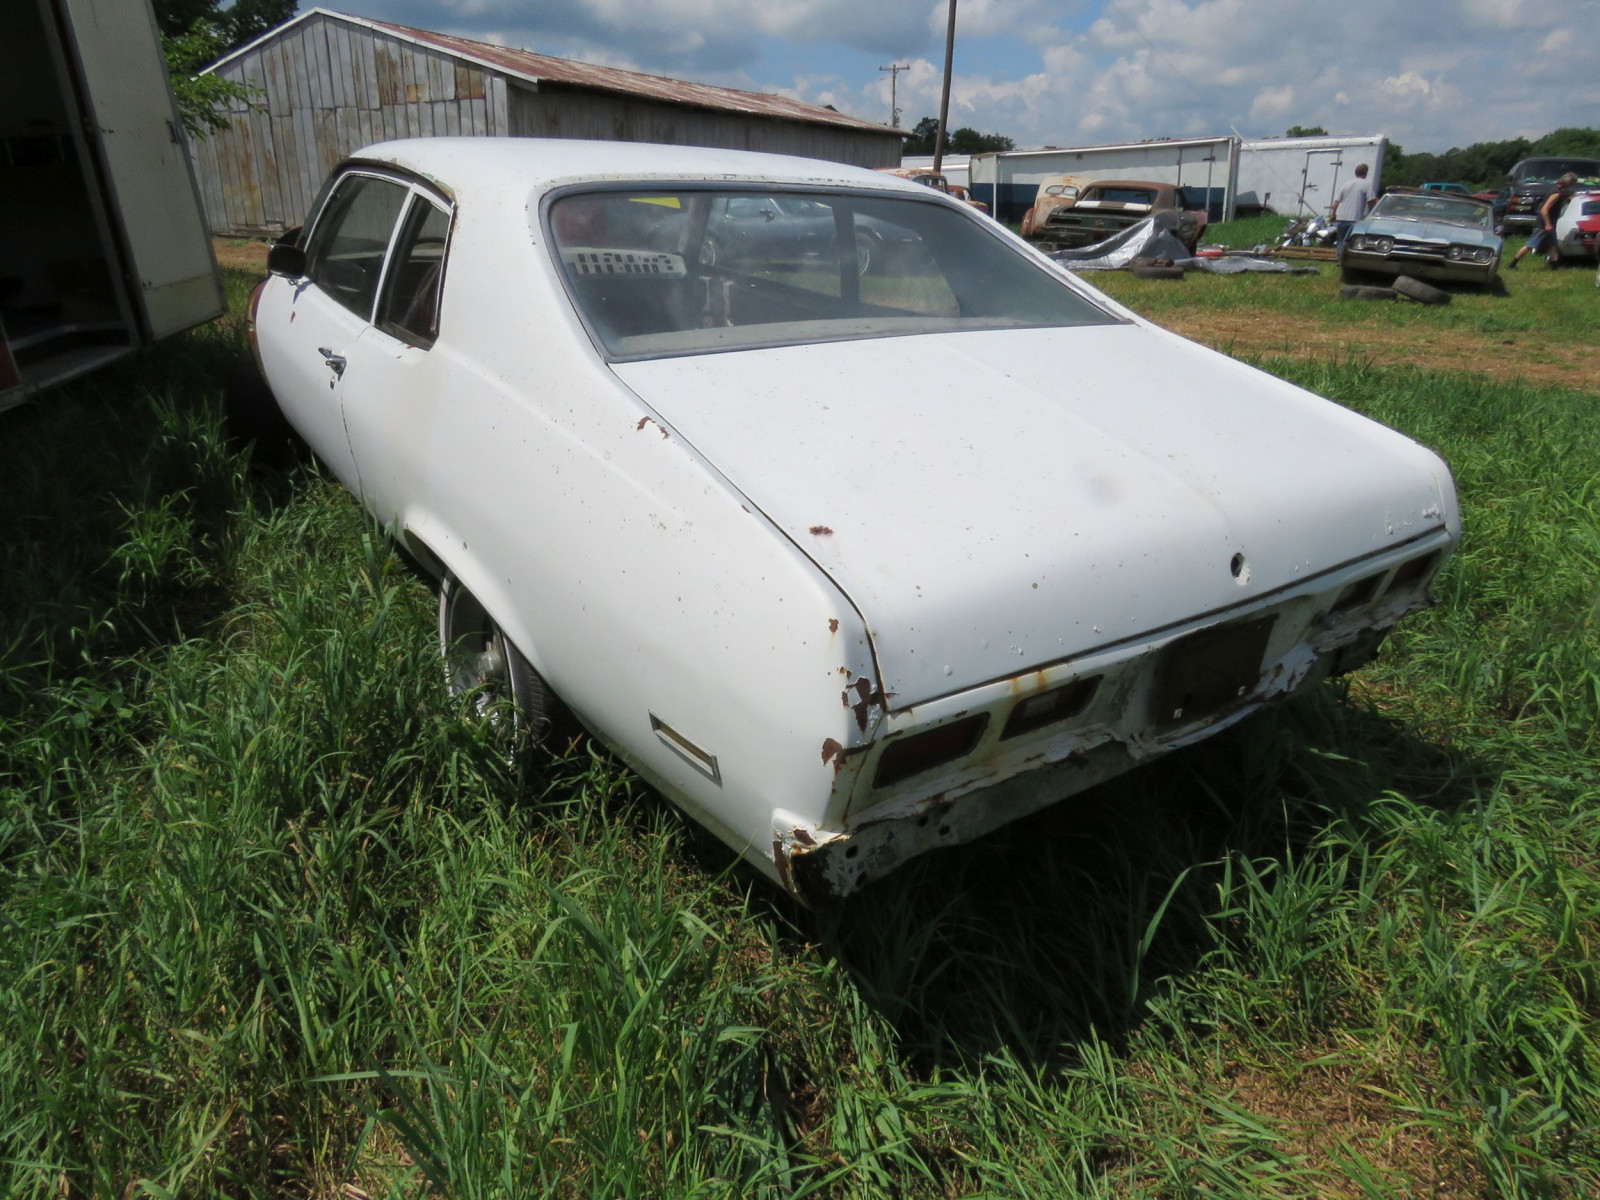 1973 Chevrolet Nova Body for Restore or Parts - Image 5